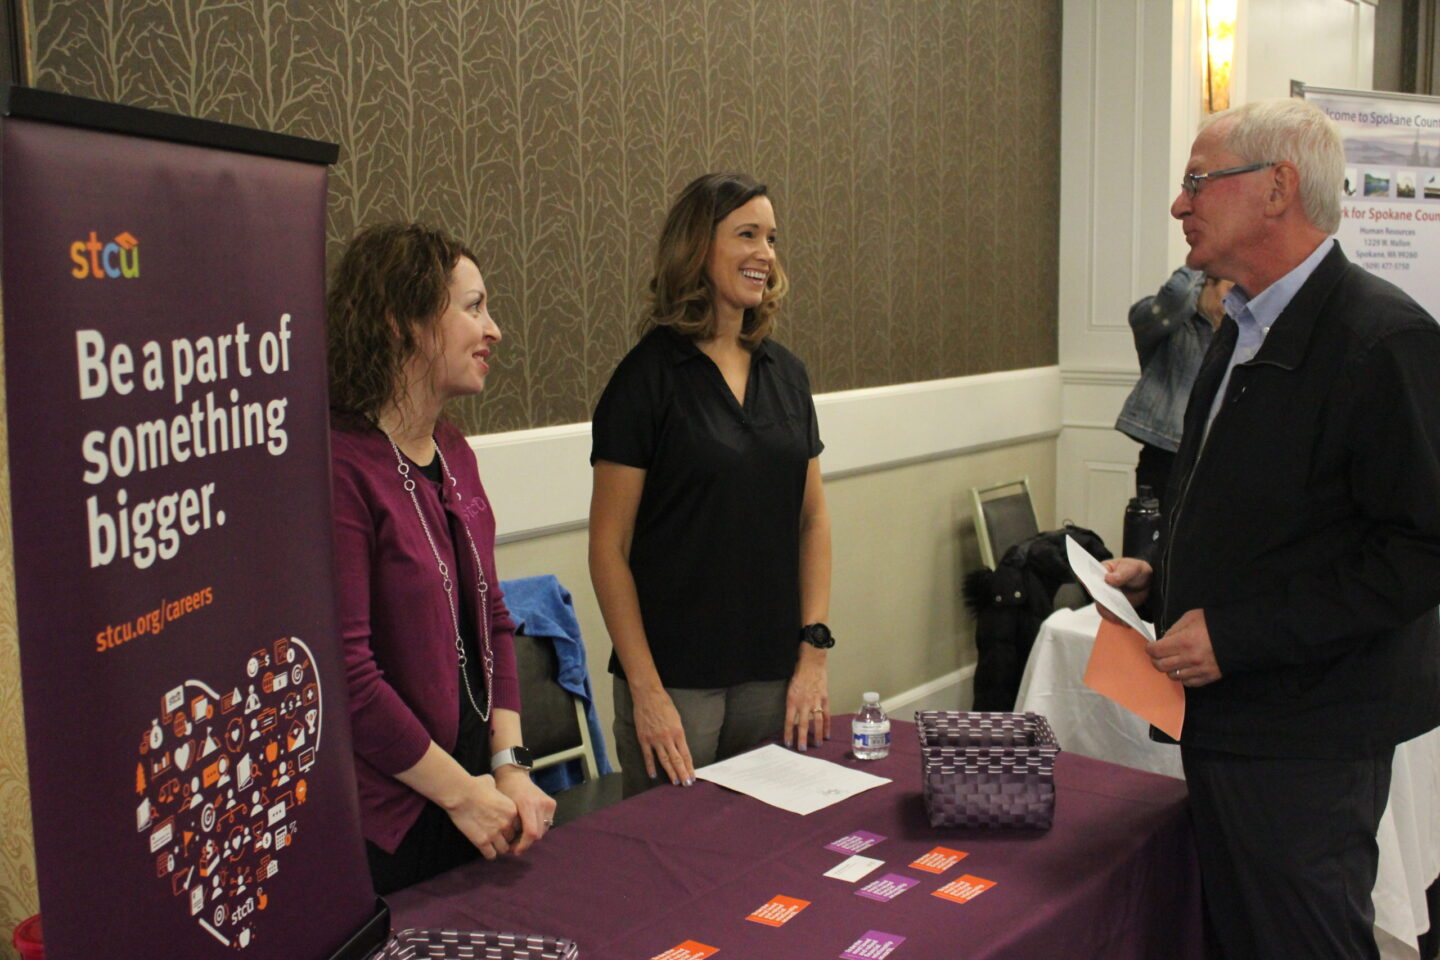 STCU booth at the job fair